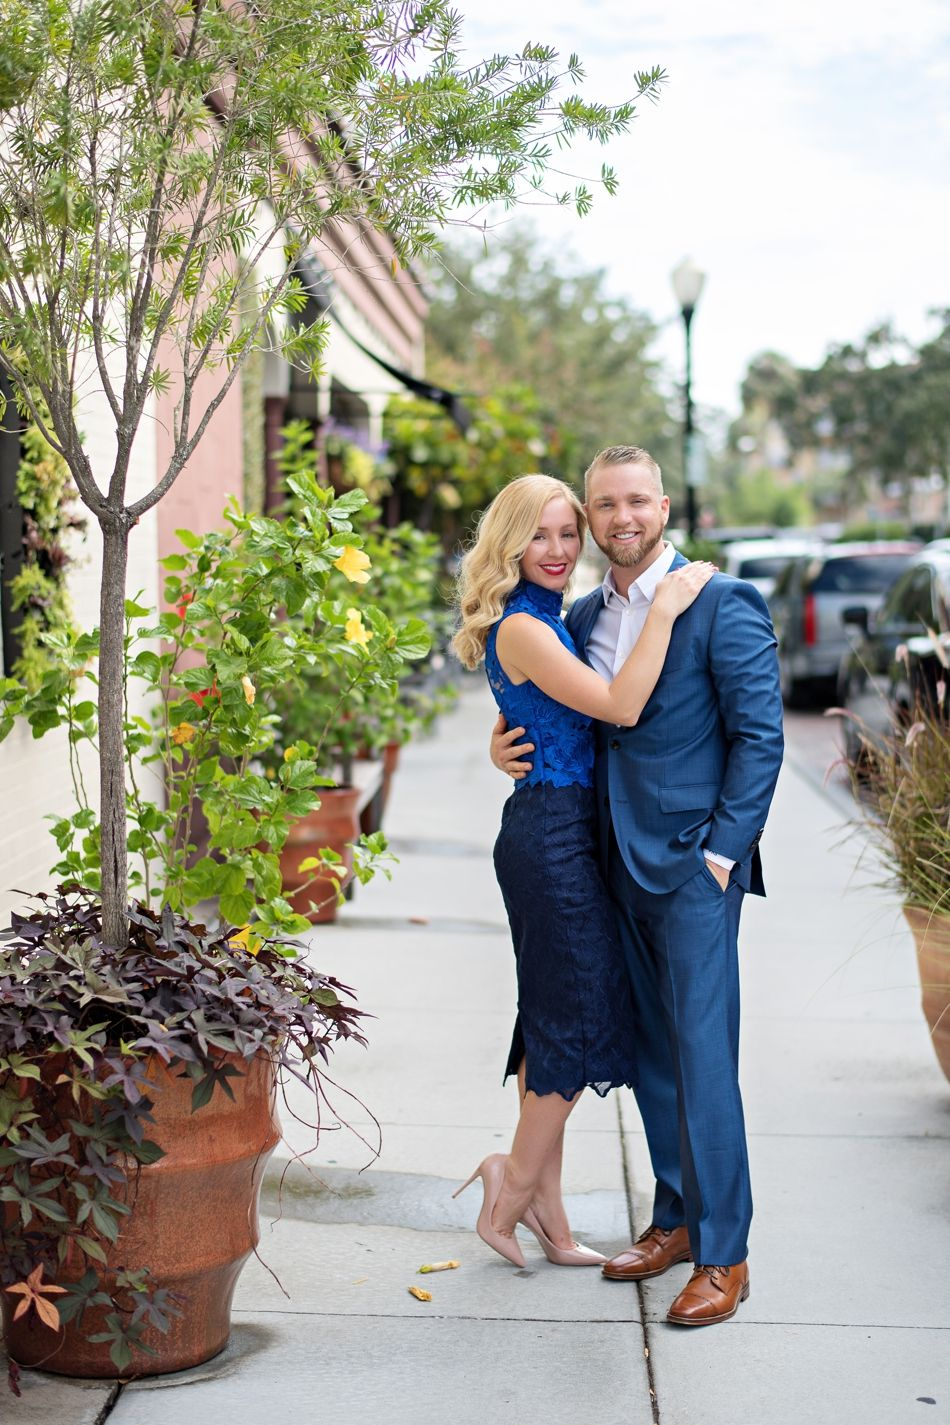 Kwp Holiday Family Sessions Part 1 Orlando Wedding Photographer Orlando Wedding Wedding Photographers